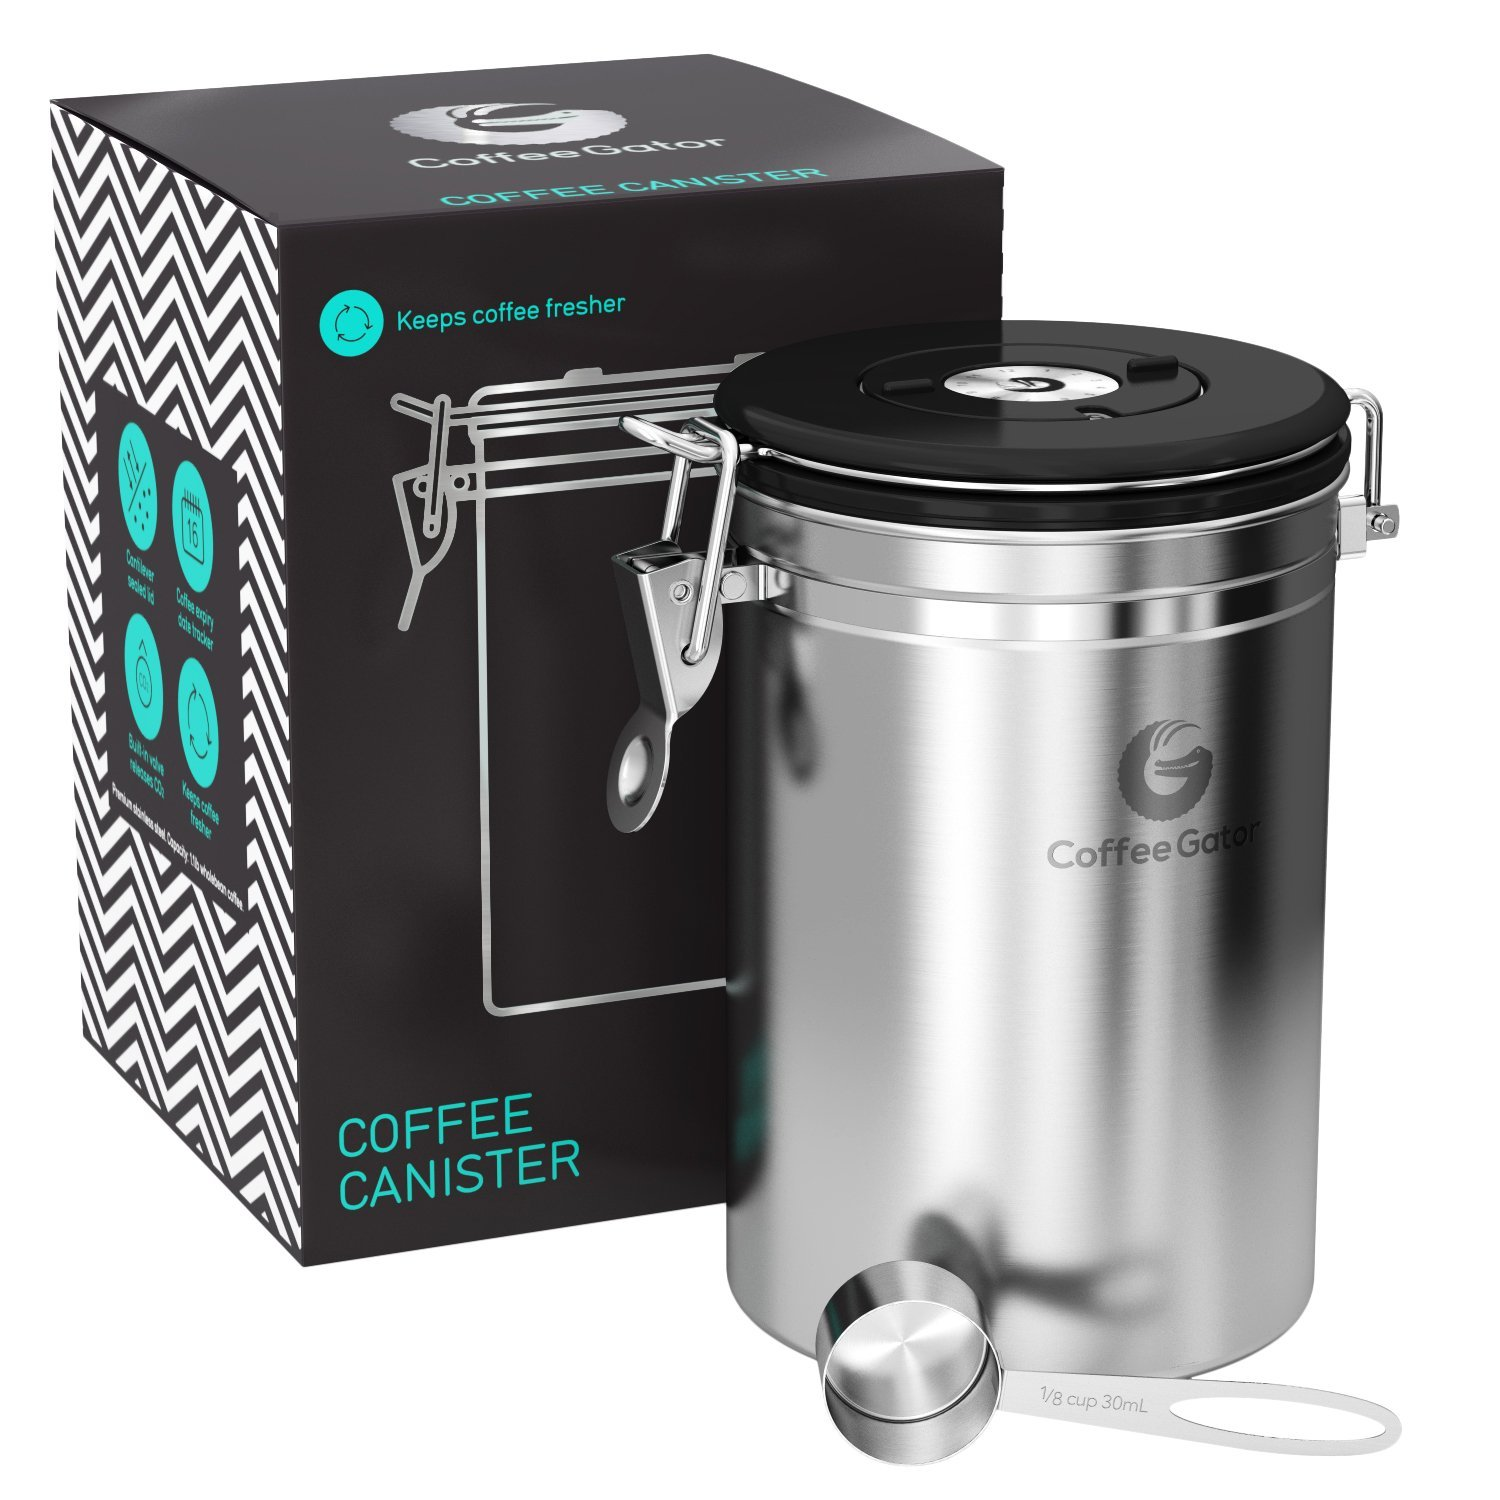 Coffee Gator Stainless Steel Container - Canister with co2 Valve and Scoop - Large, Silver